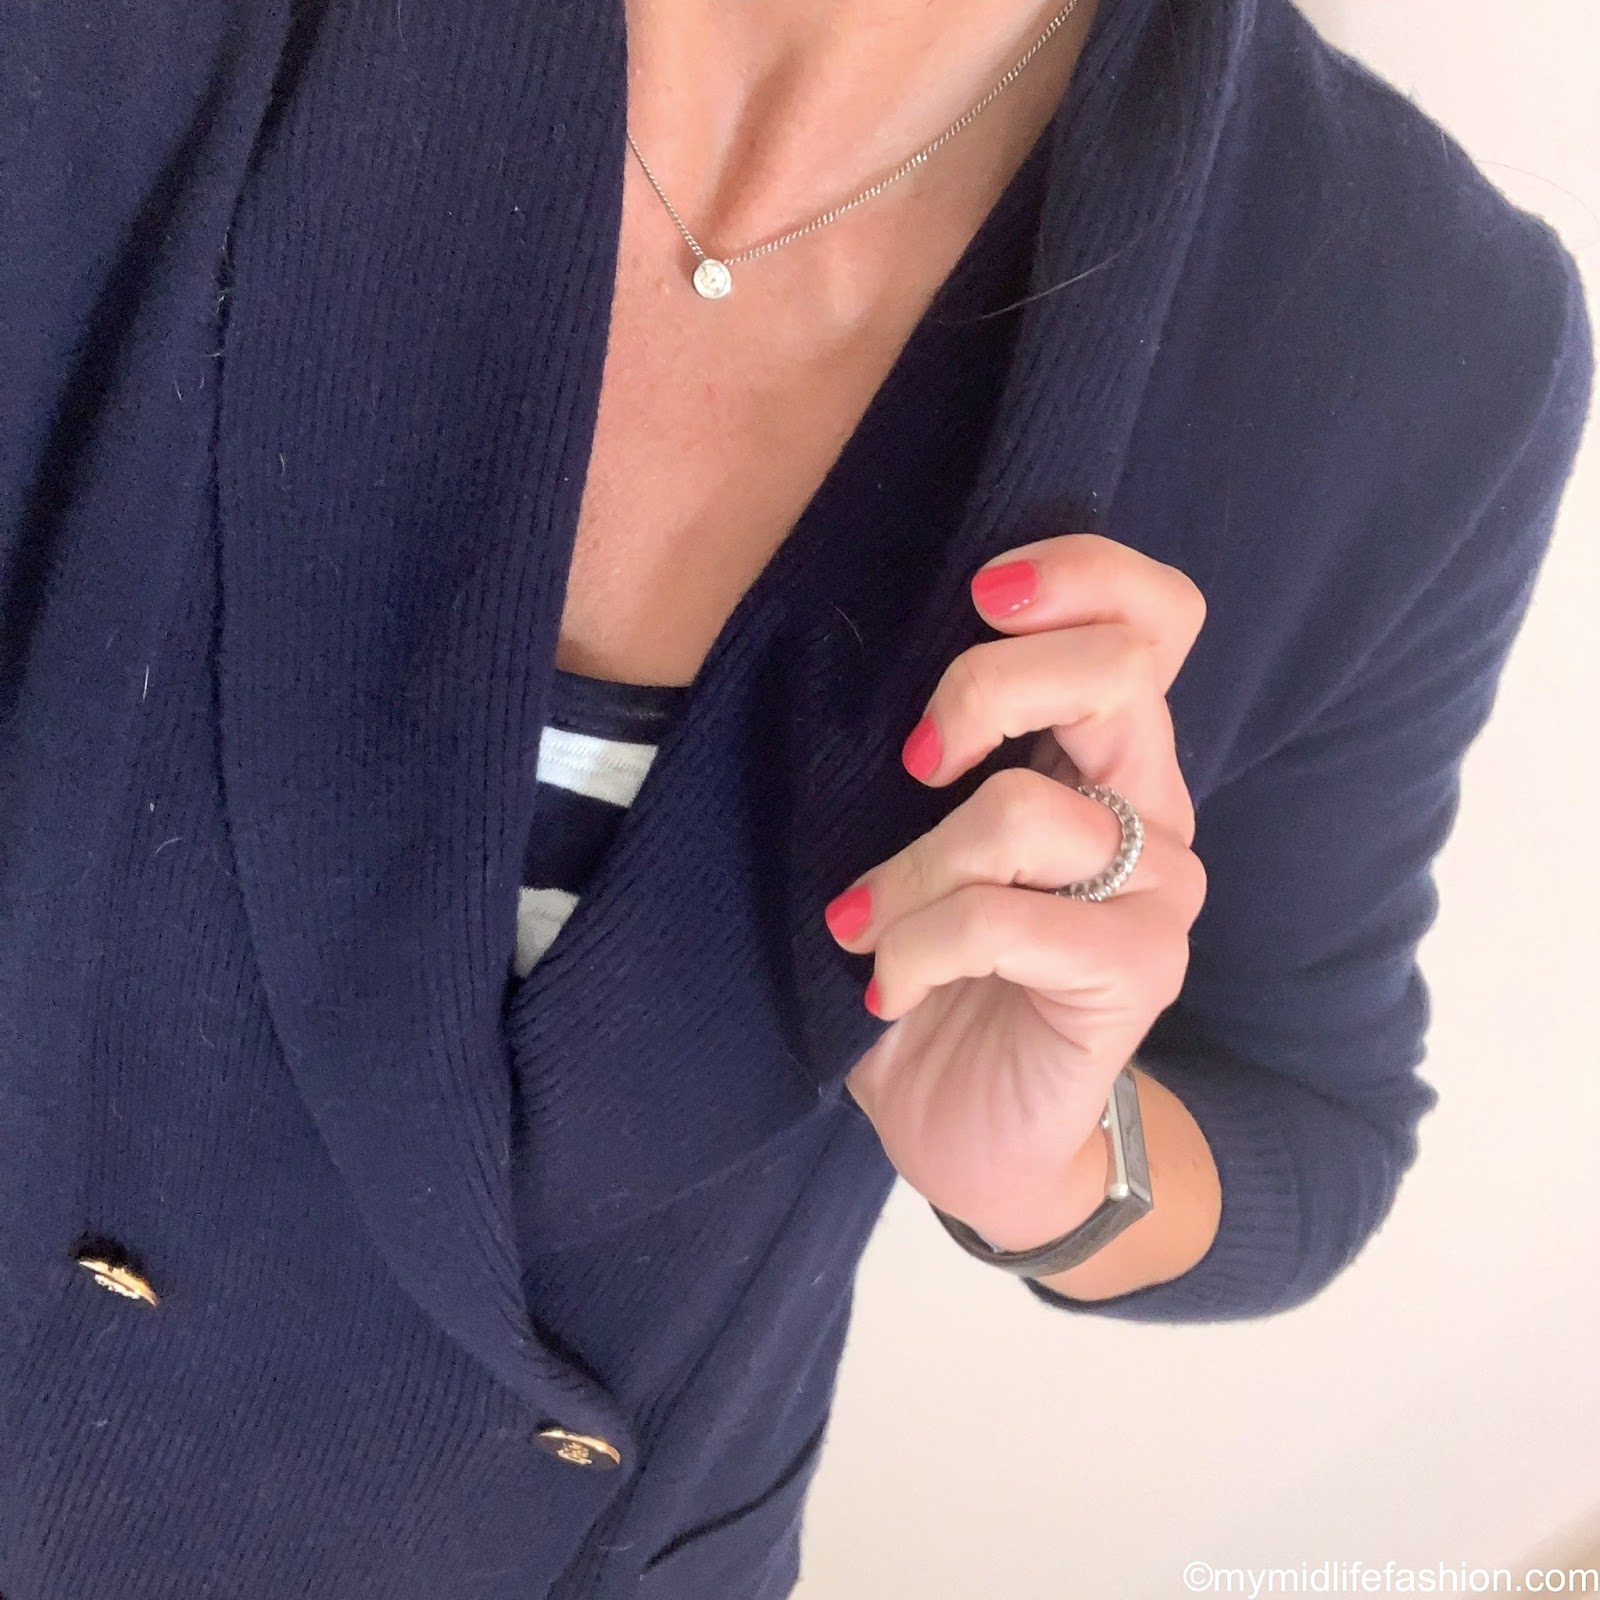 my midlife fashion, Ralph Lauren double breasted knitted jacket, j crew vintage cotton stripe tank top, j crew 8 toothpick in classic wash, j crew suede tassel flats